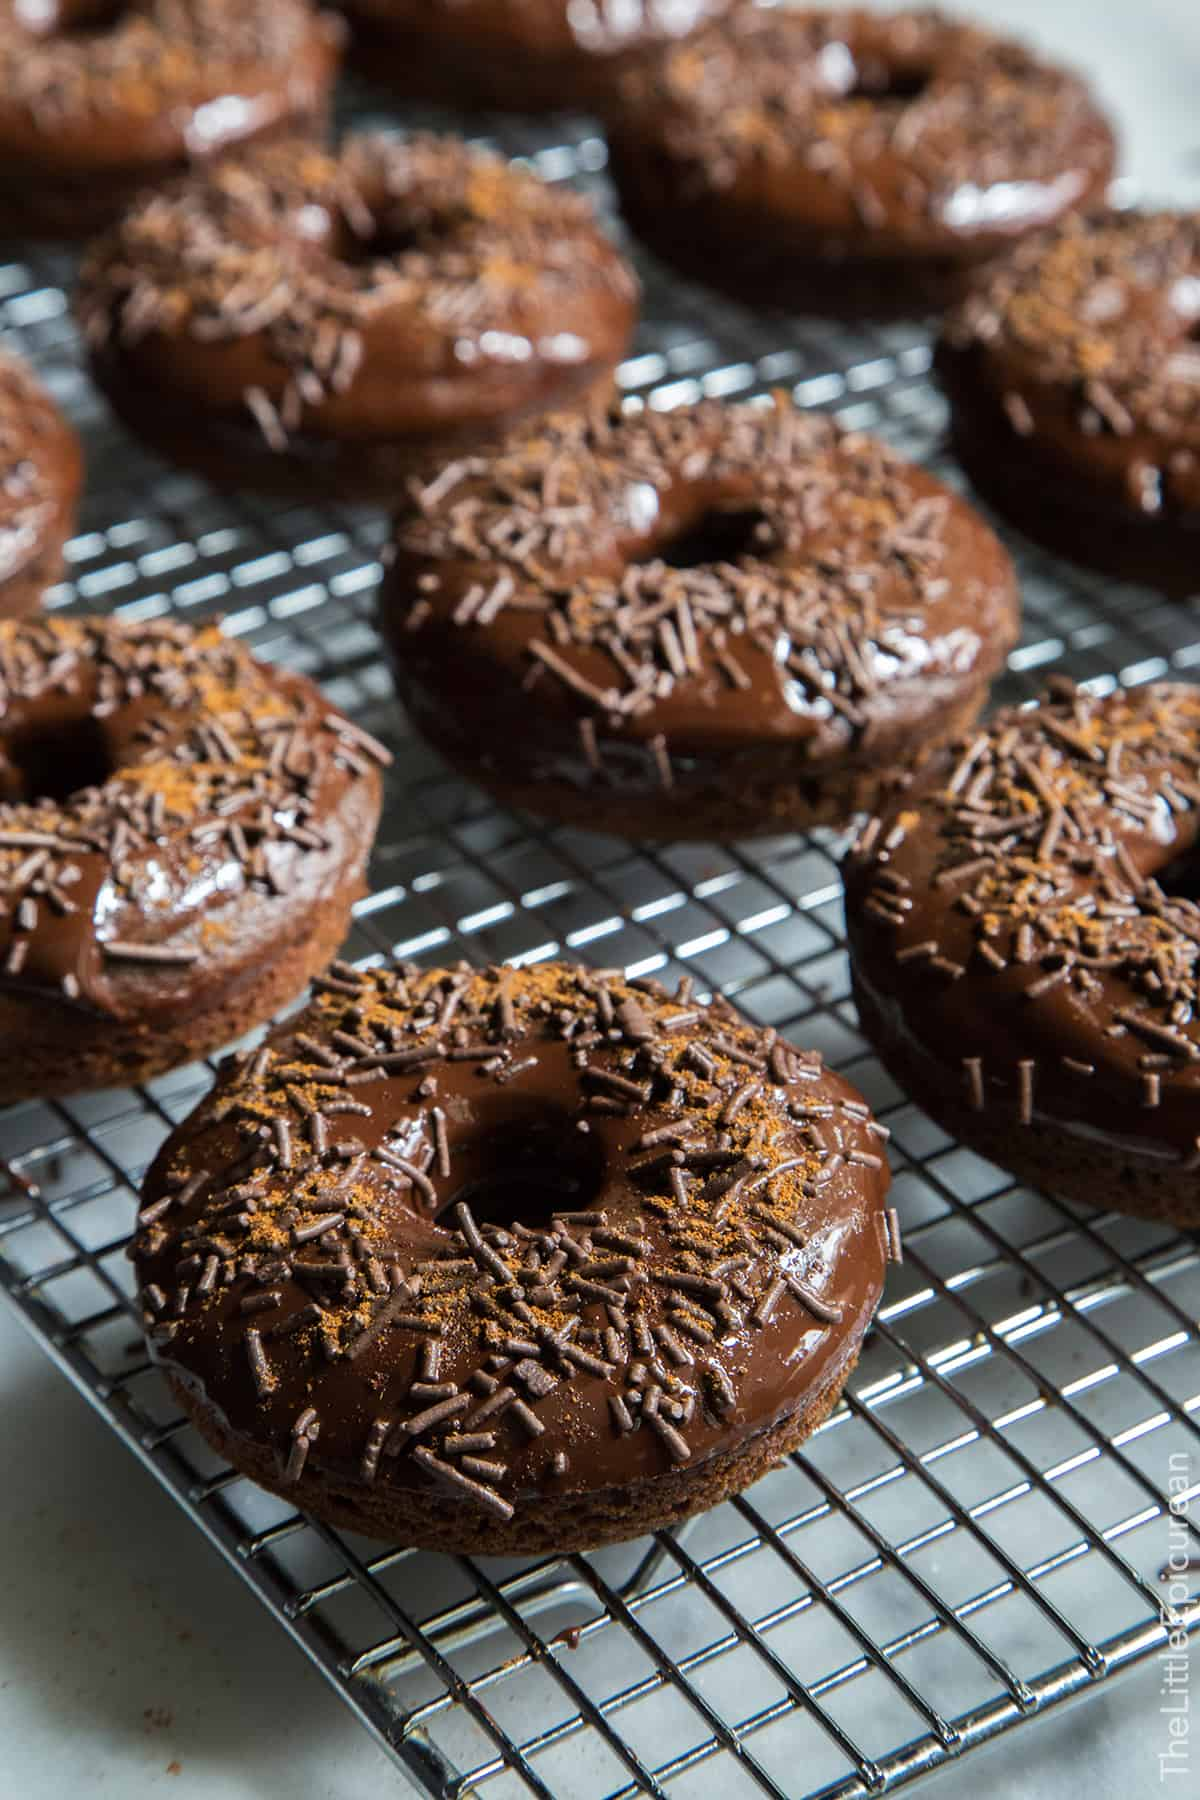 Baked Cayenne Chocolate Donuts